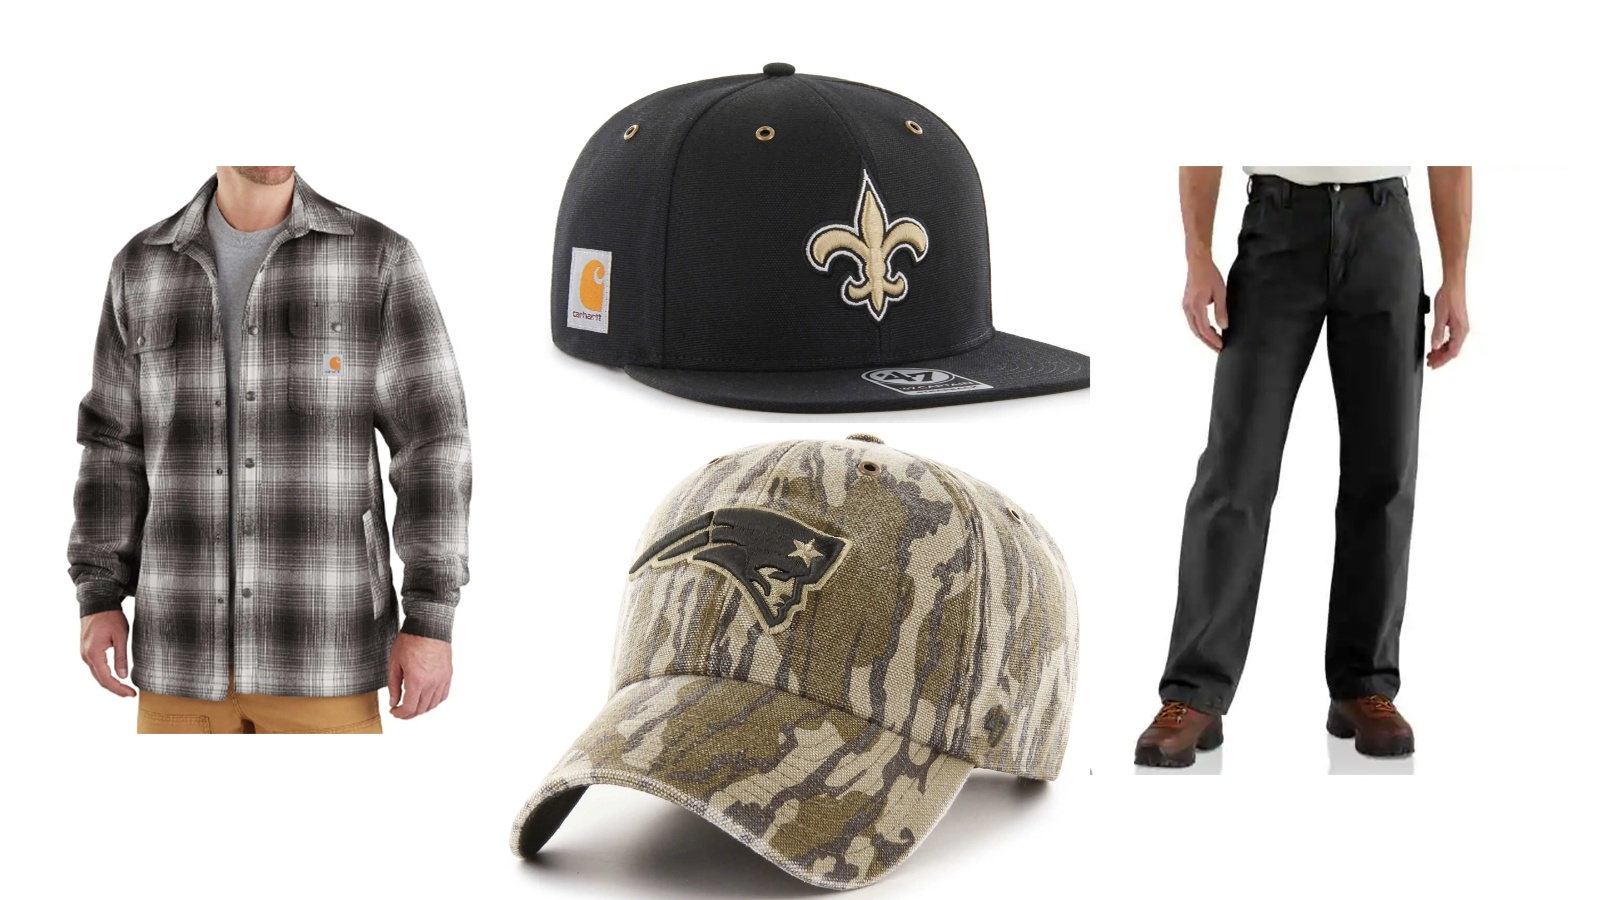 209cad91c56 5 Great Picks from Carhartt's Massive Winter Clearance Sale - Men's ...